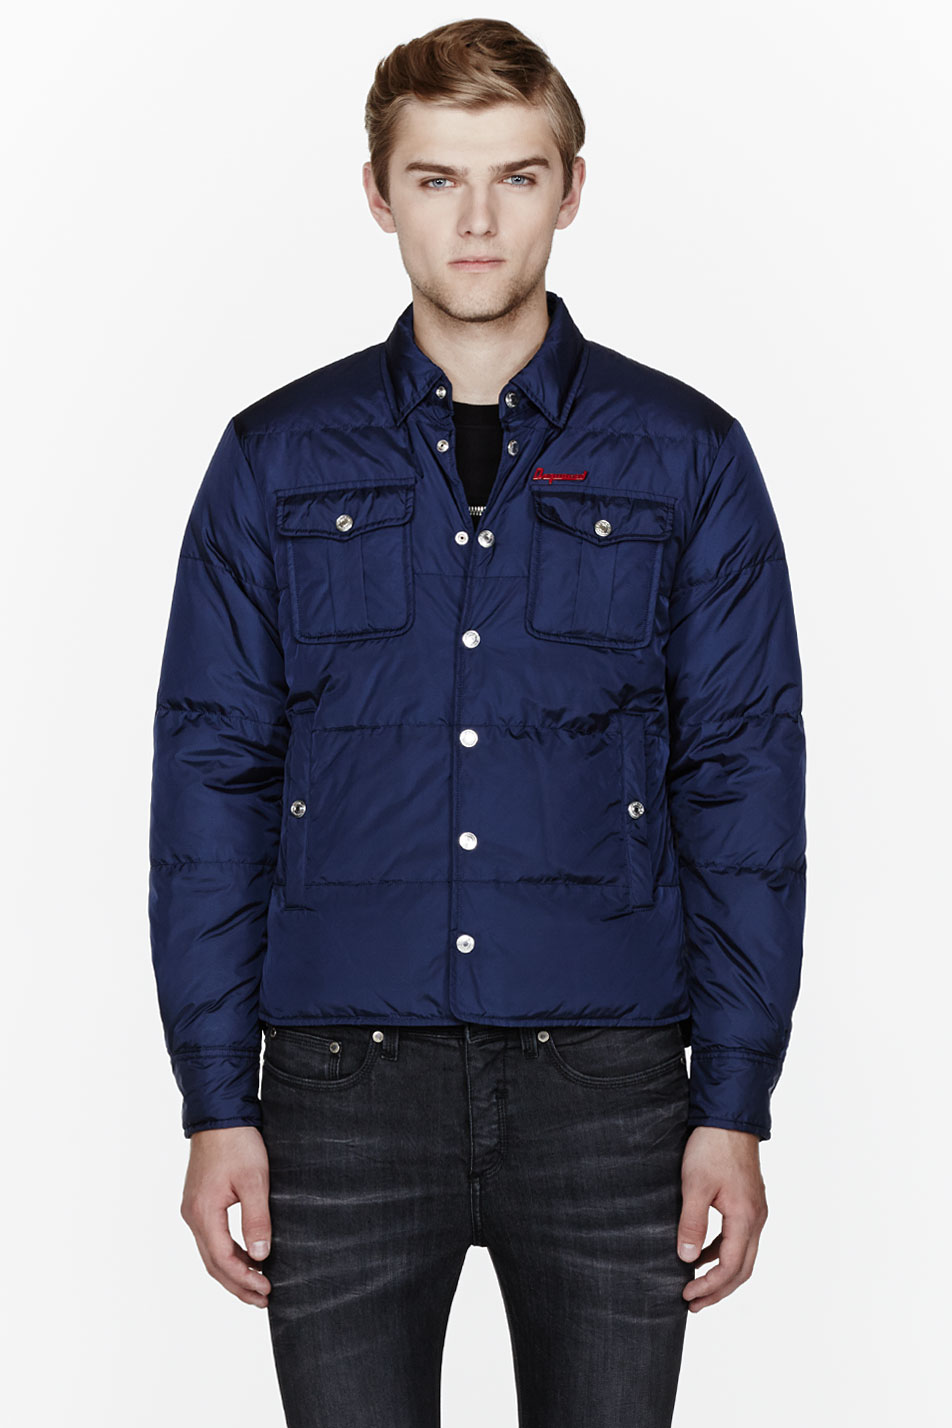 Dsquared2 Navy Nylon Quilted Button Down Shirt Jacket In